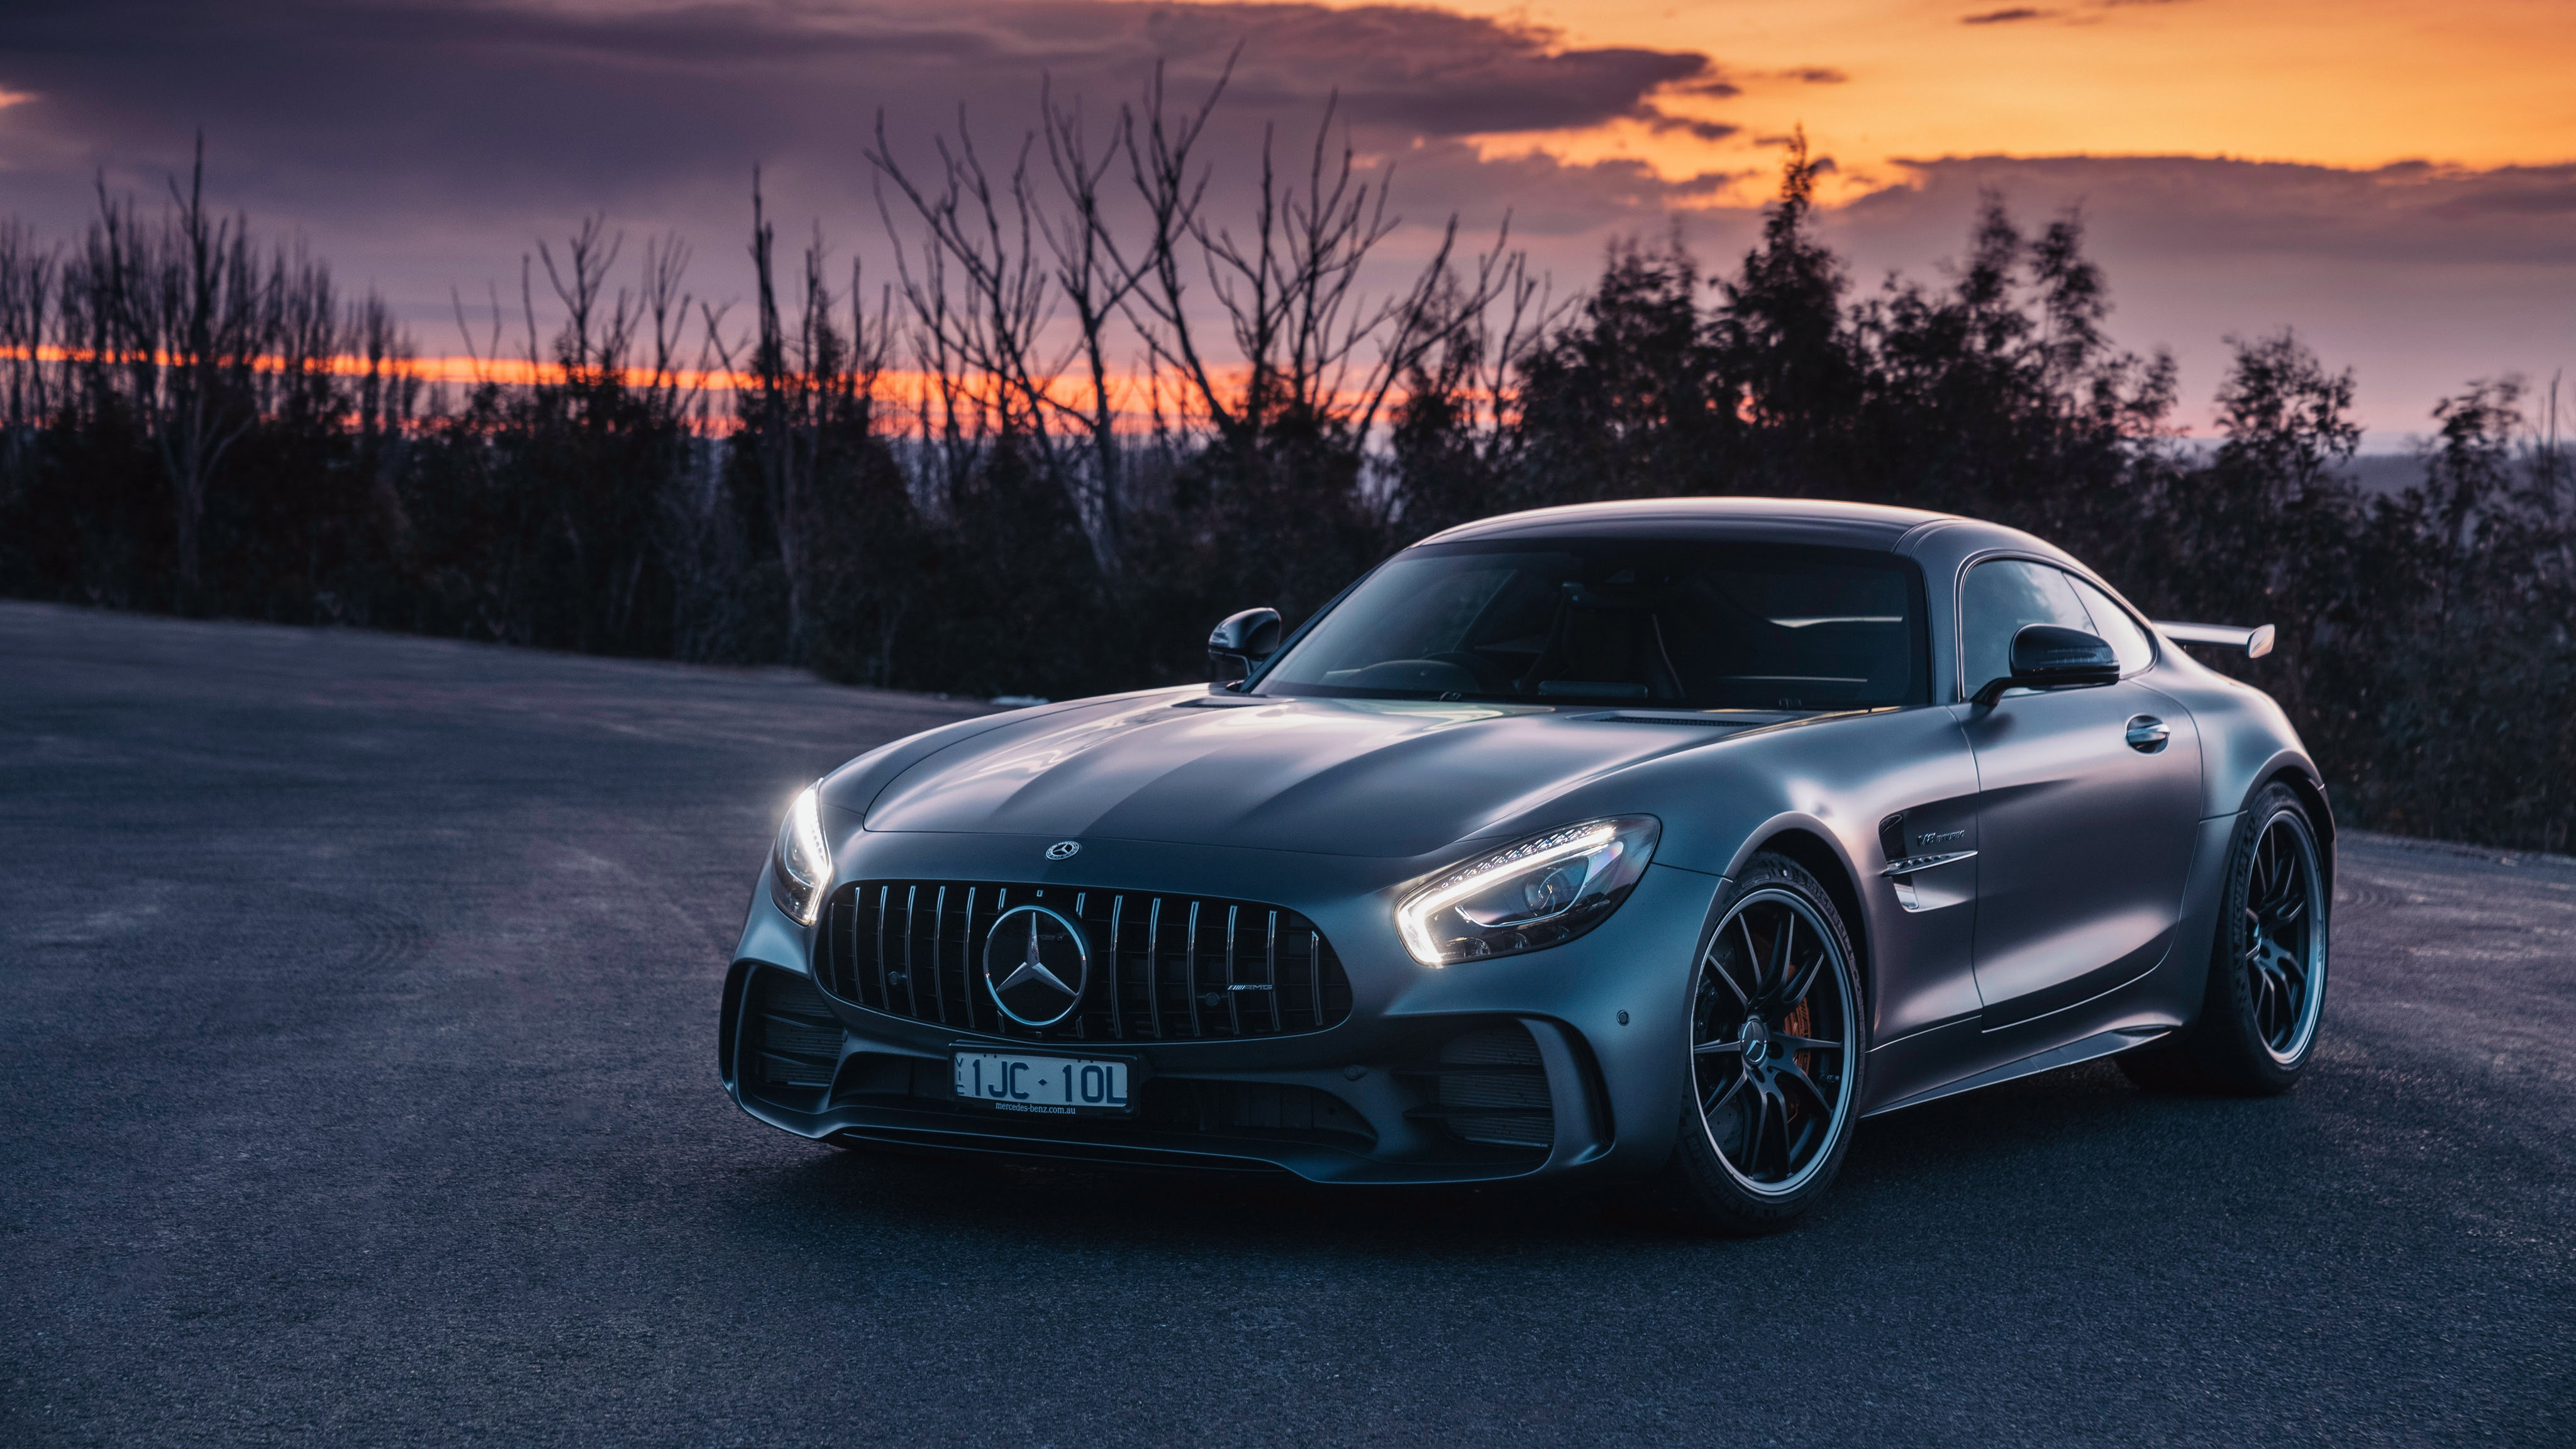 AMG GTR Mercedes Benz 2018, HD Cars, 4k Wallpapers, Images ...